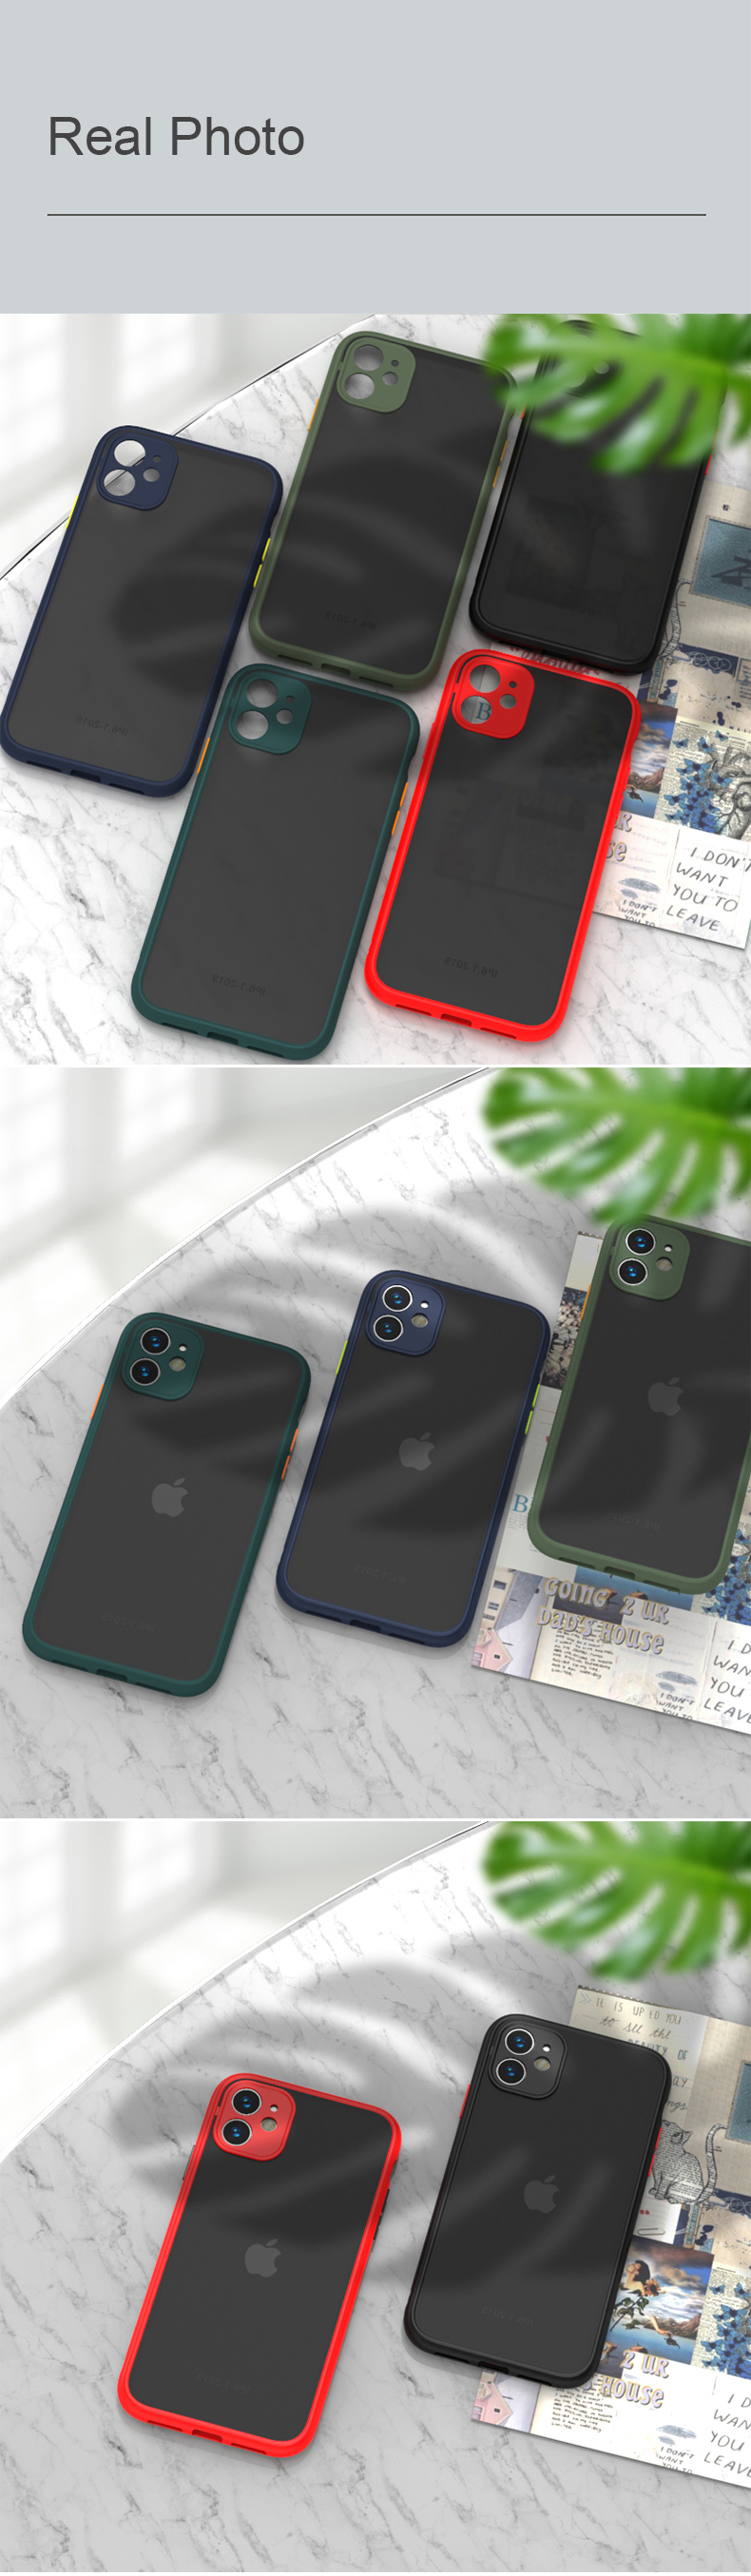 Shockproof iPhone Case (BUY 1 GET 1 FREE)